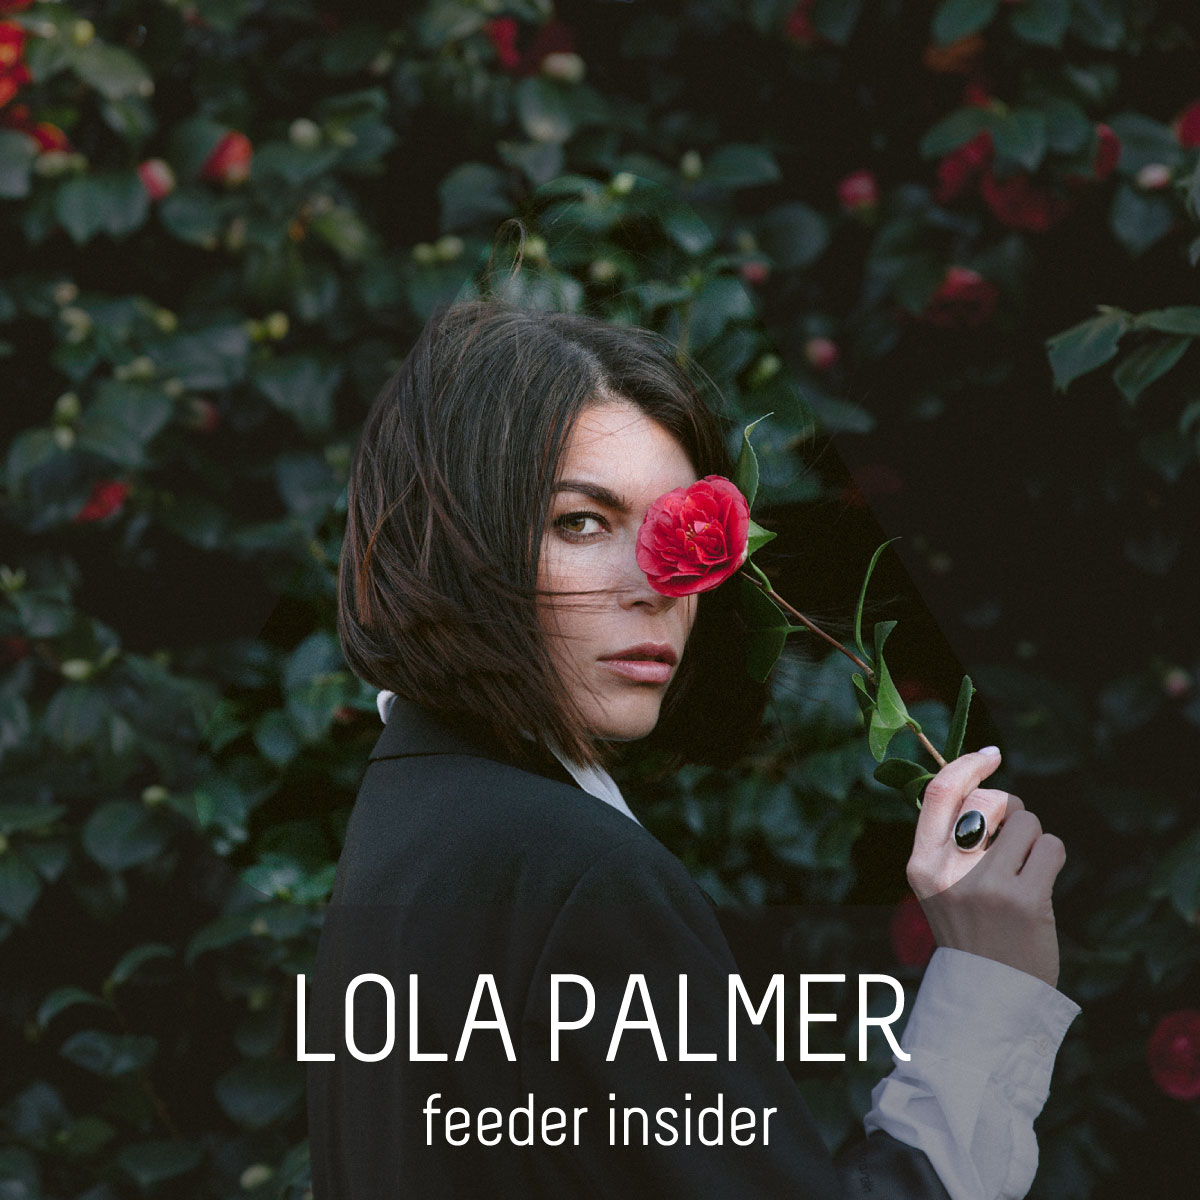 feeder insider interview with Lola Palmer